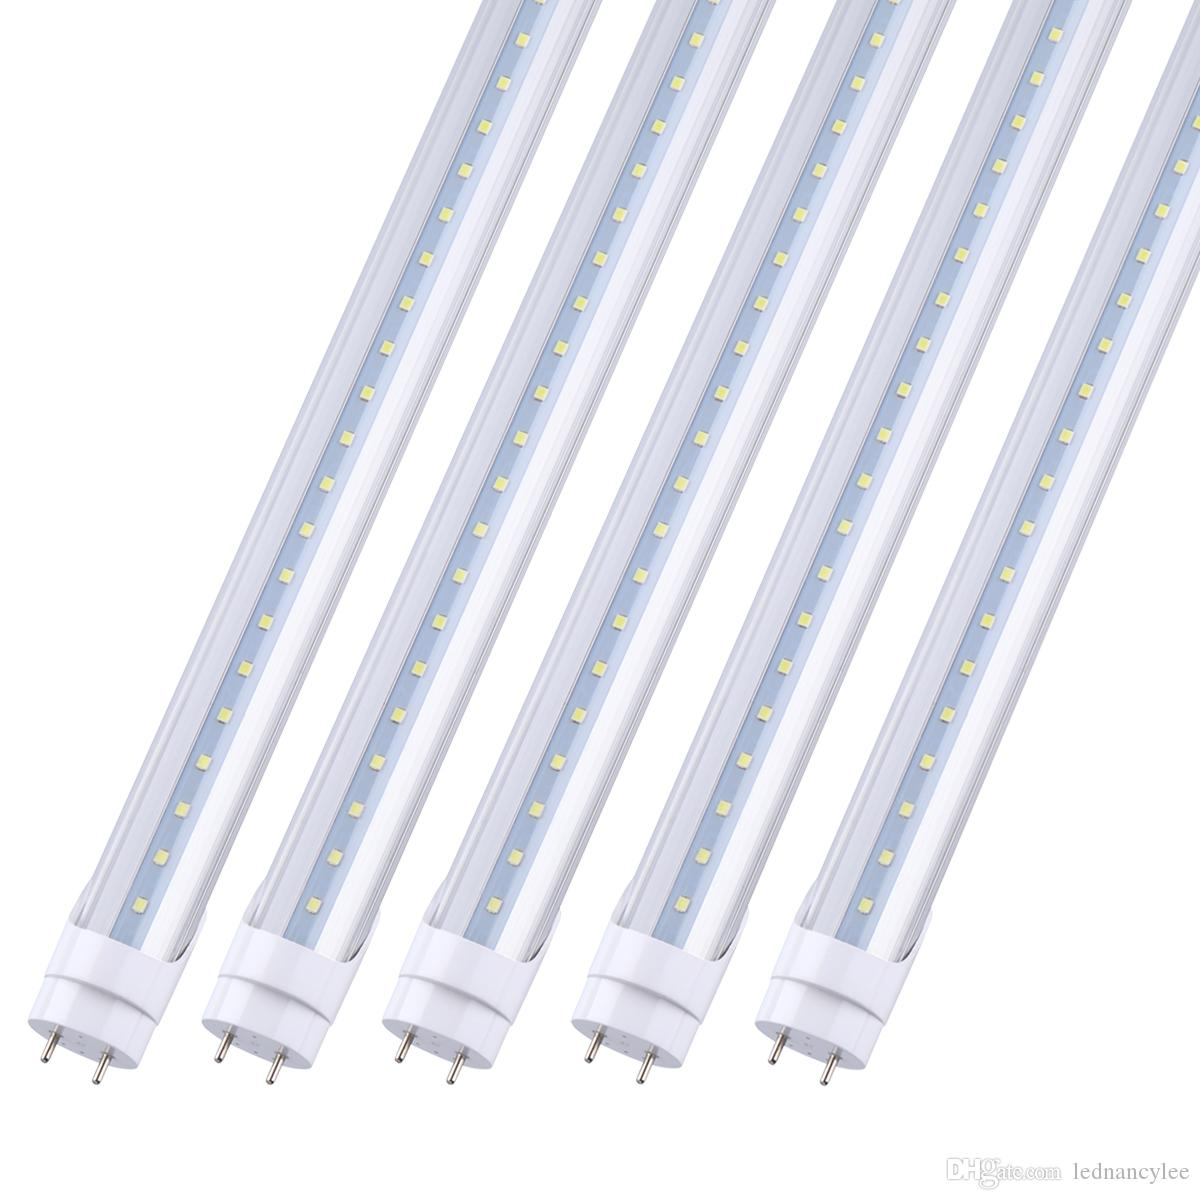 4ft LED Light Fixtures 4Feet LED Tube T8 LED Bulbs Tubes Frosted Type 18W 22W 28W Super Bright SMD2835 AC85-277V